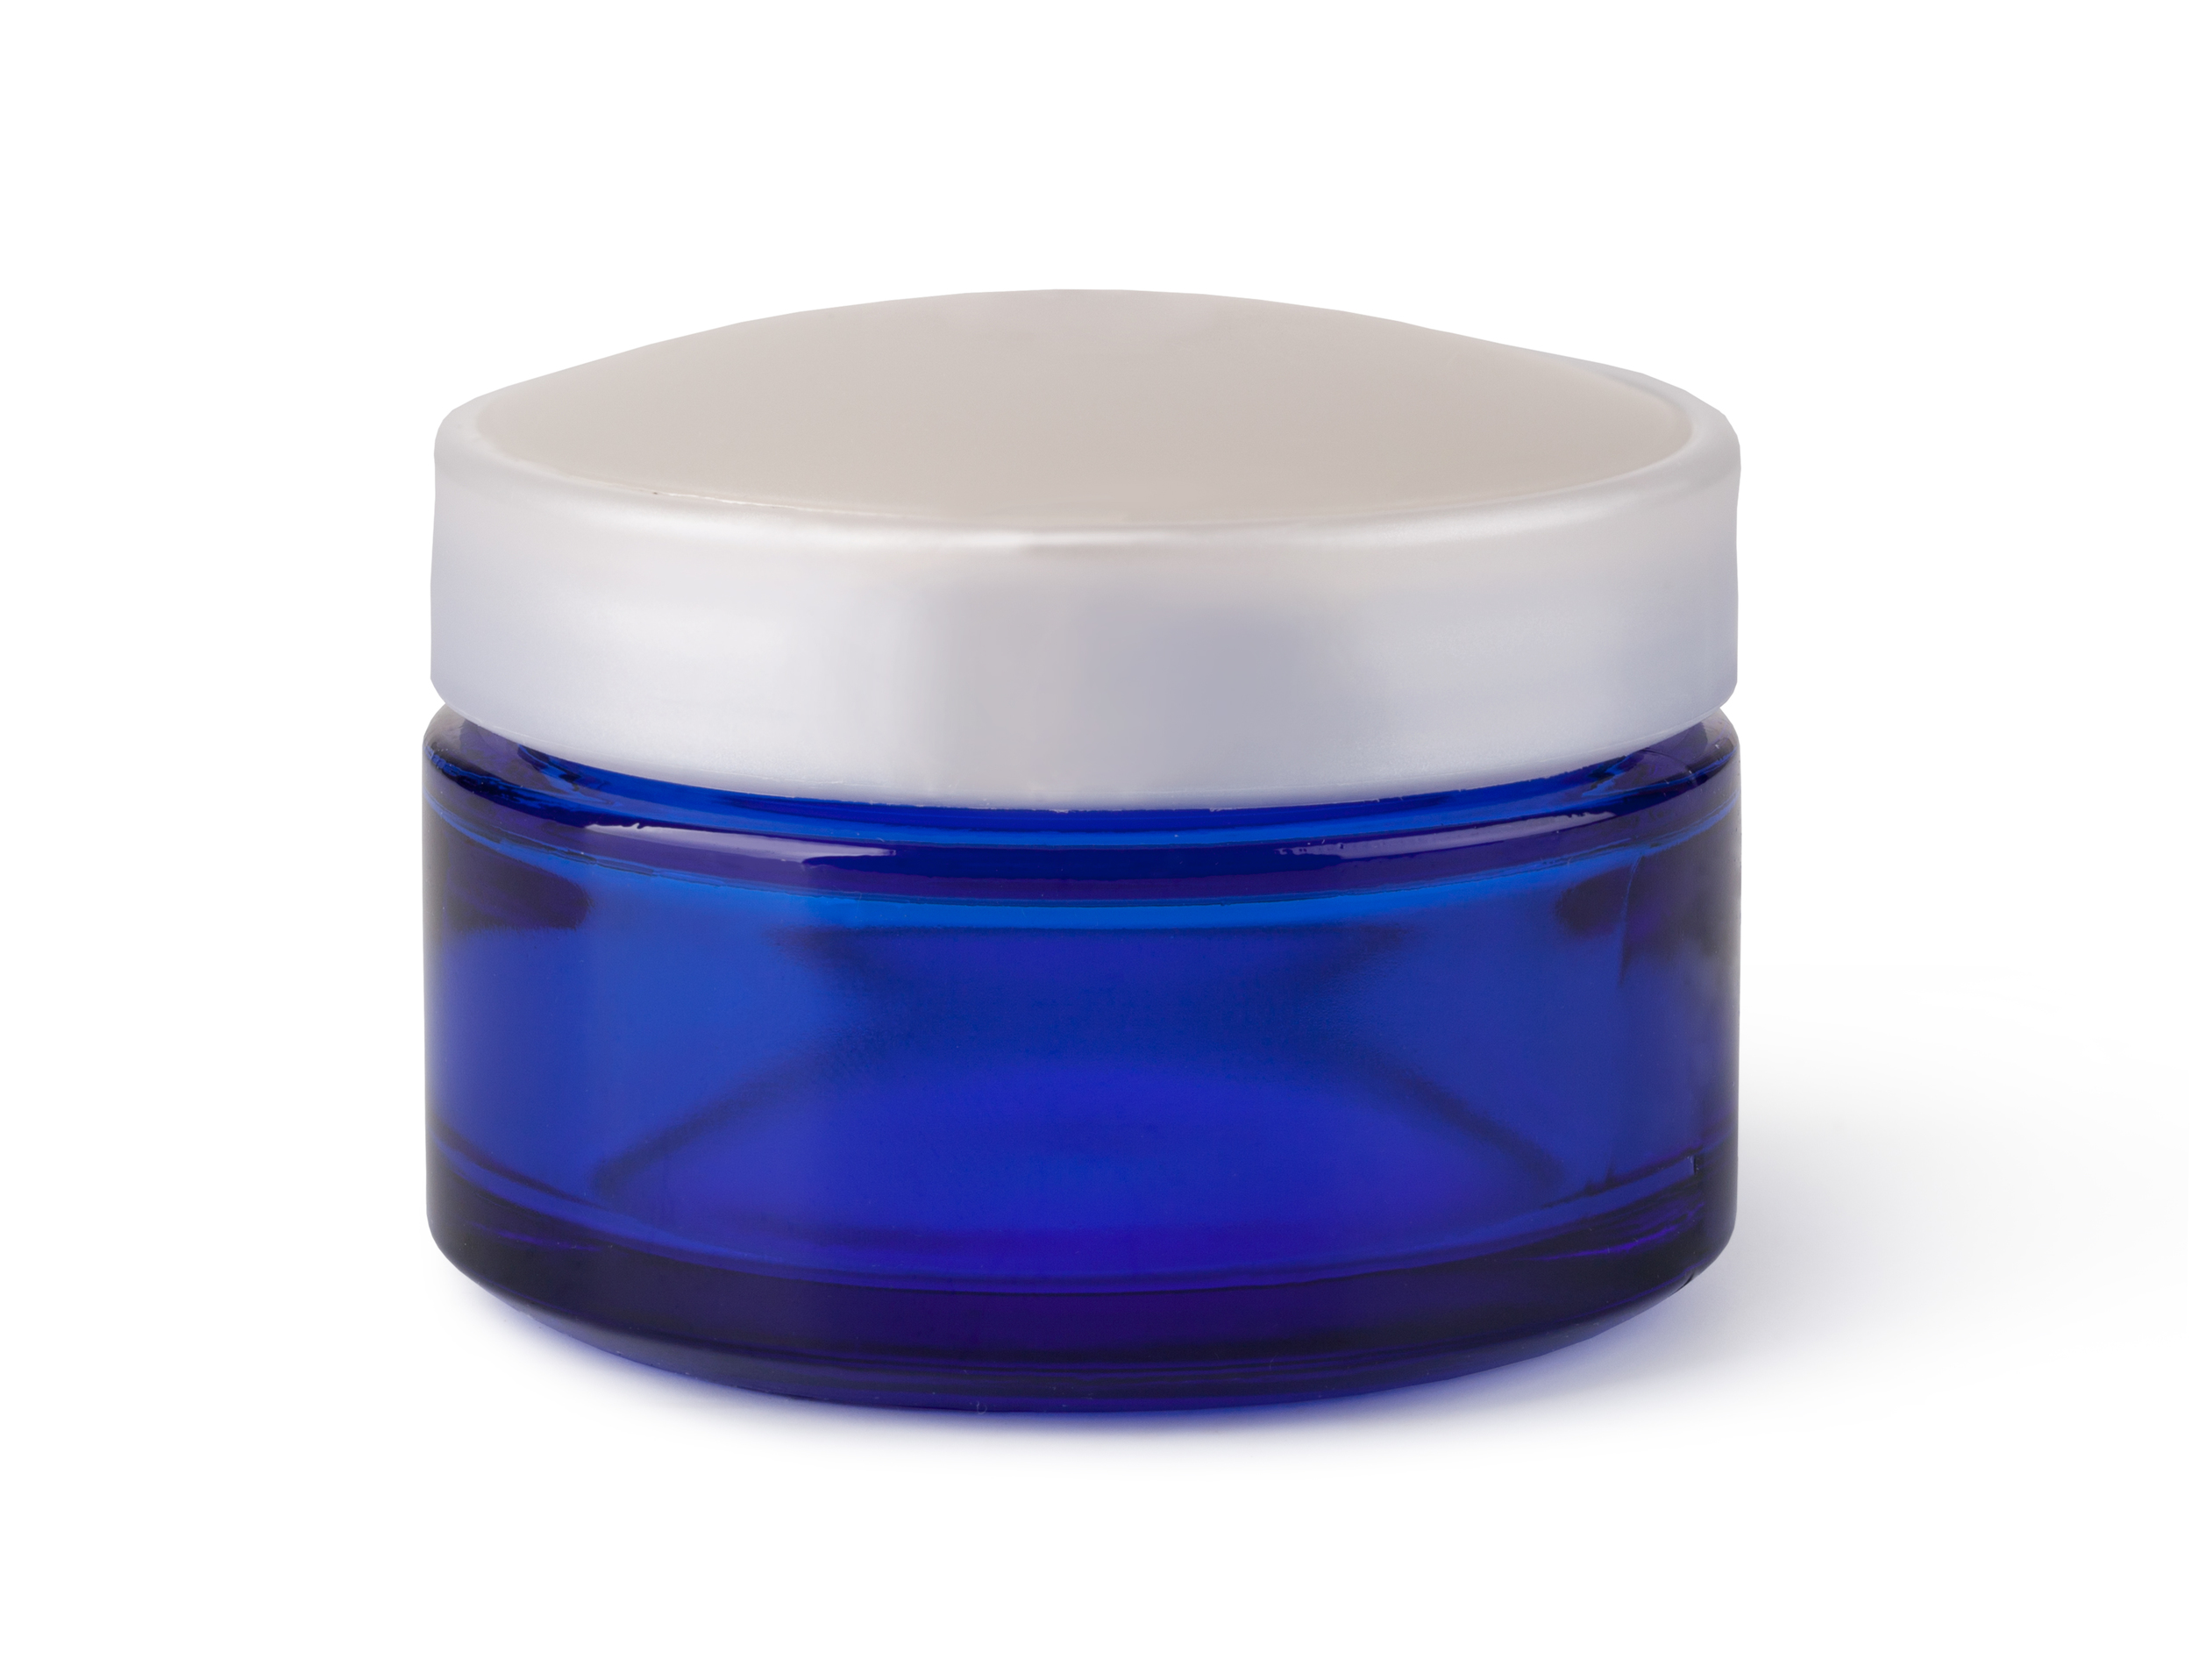 Cosmetic Jars, Powder Filling Services, Colorado Contract Packaging, Colorado Contract Manufacturing, Sample Solutions LLC.,